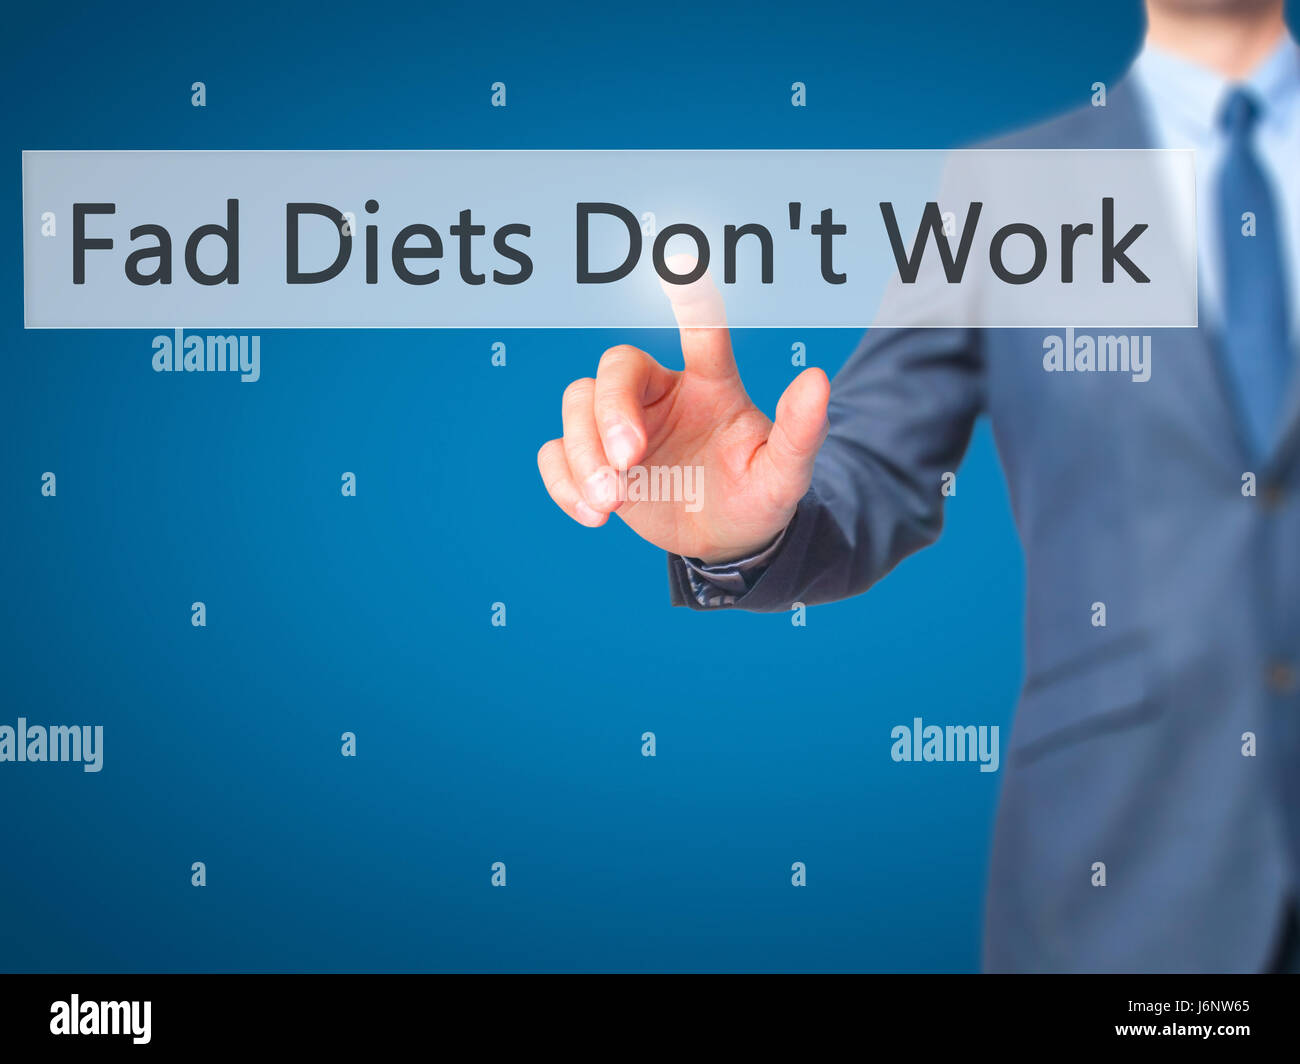 fad diets As promised, we will be discussing some popular fad diets this will be a three- part series, discussing six of the most popular fad diets,.